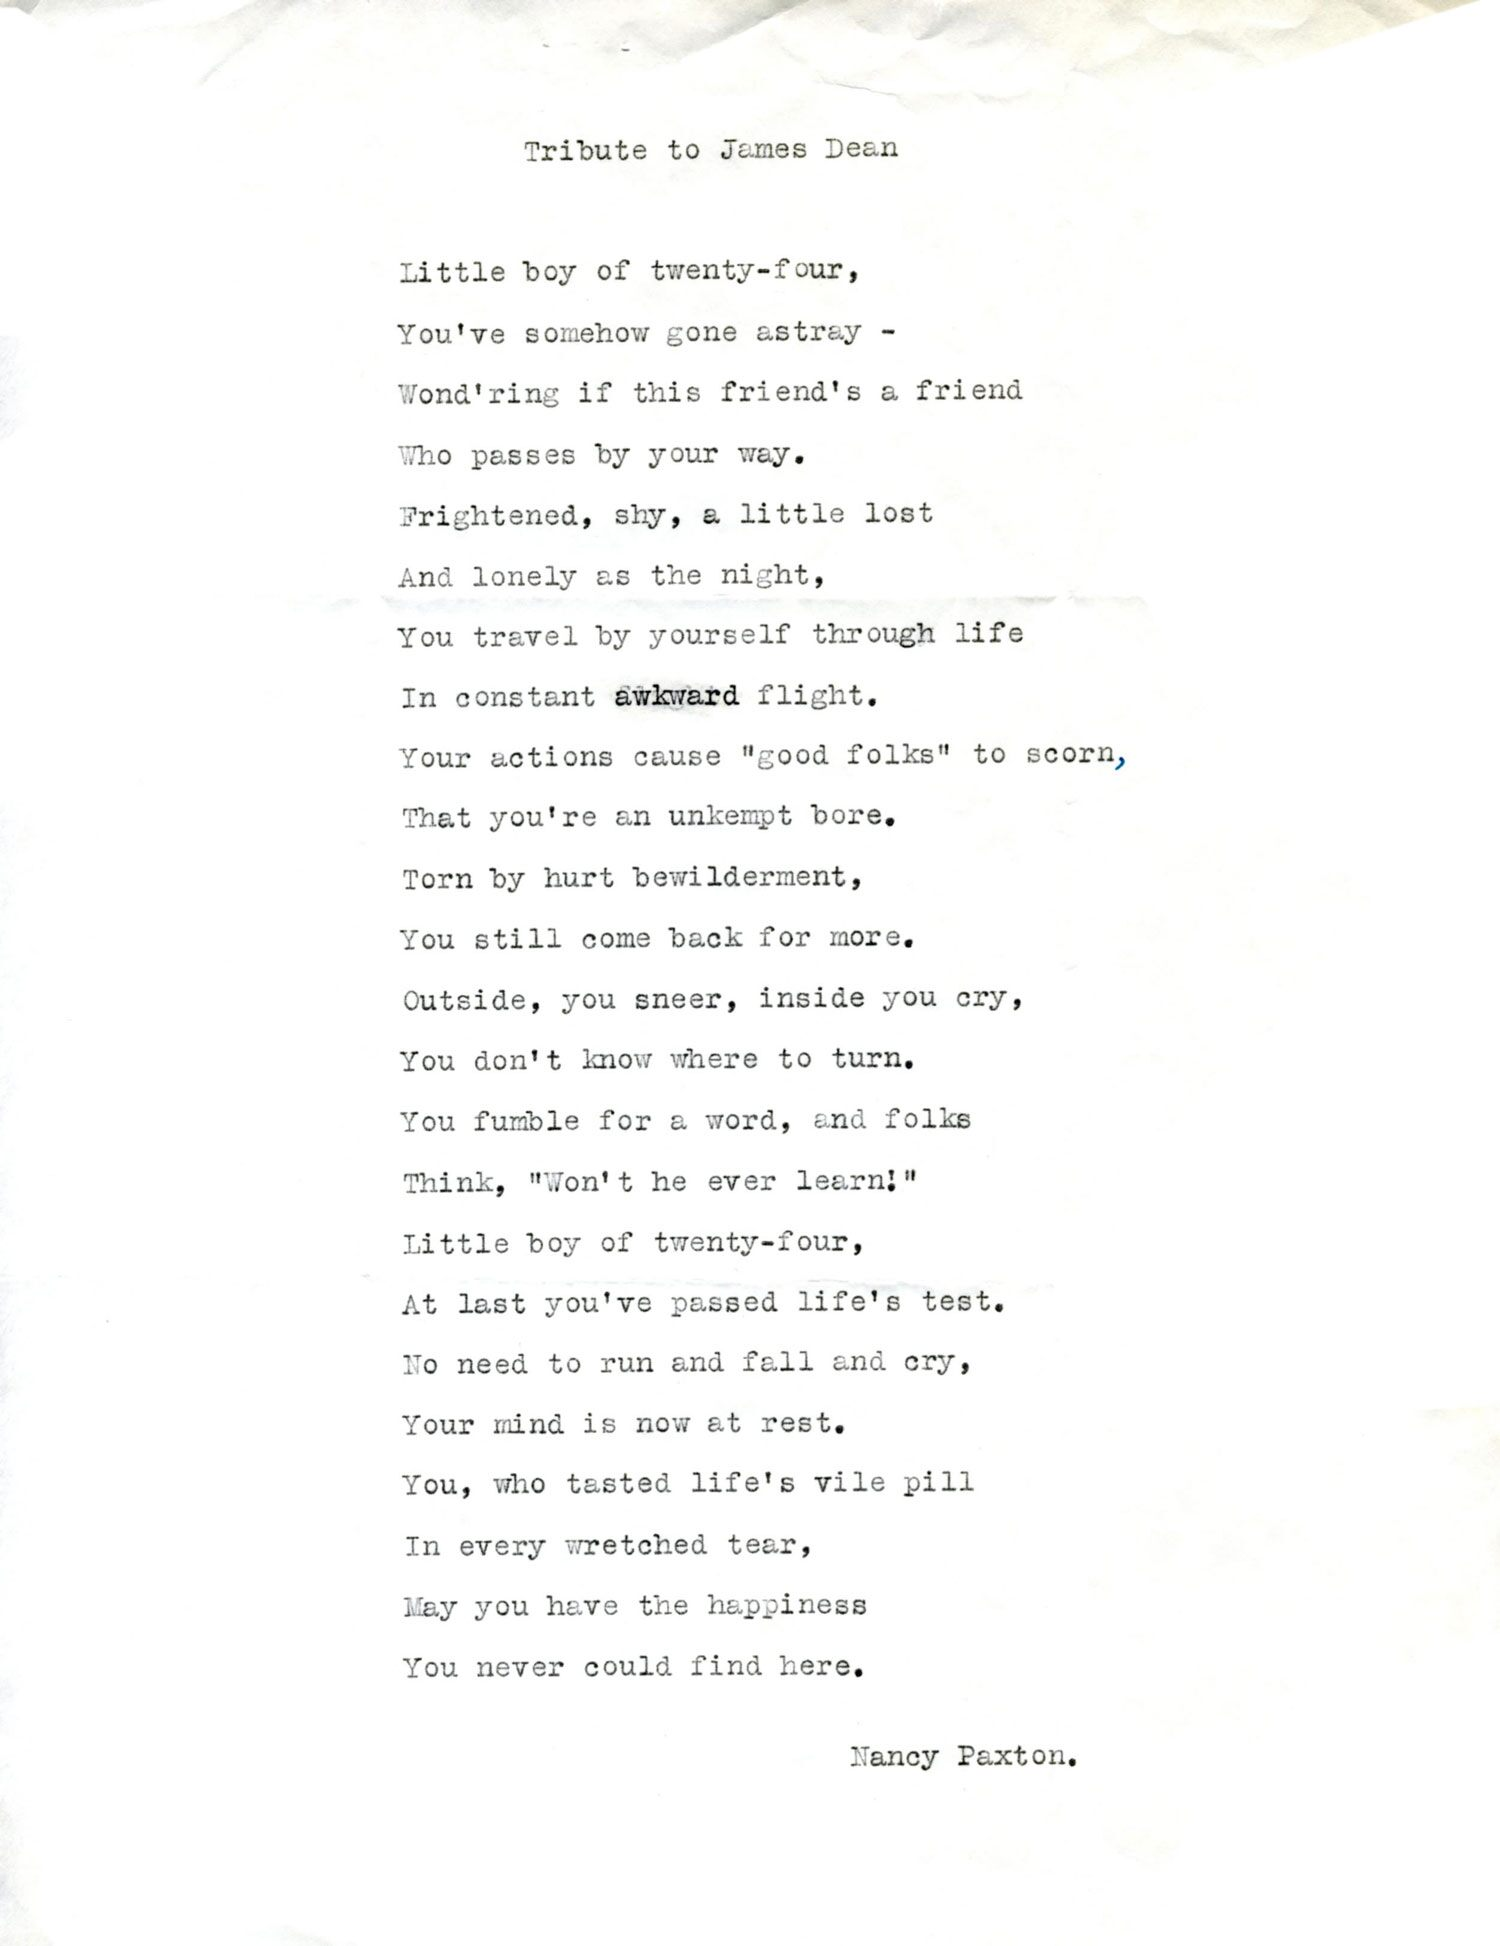 James Dean tributes after his passing included this poem written by a fan and sent to columnist Hedda Hopper.